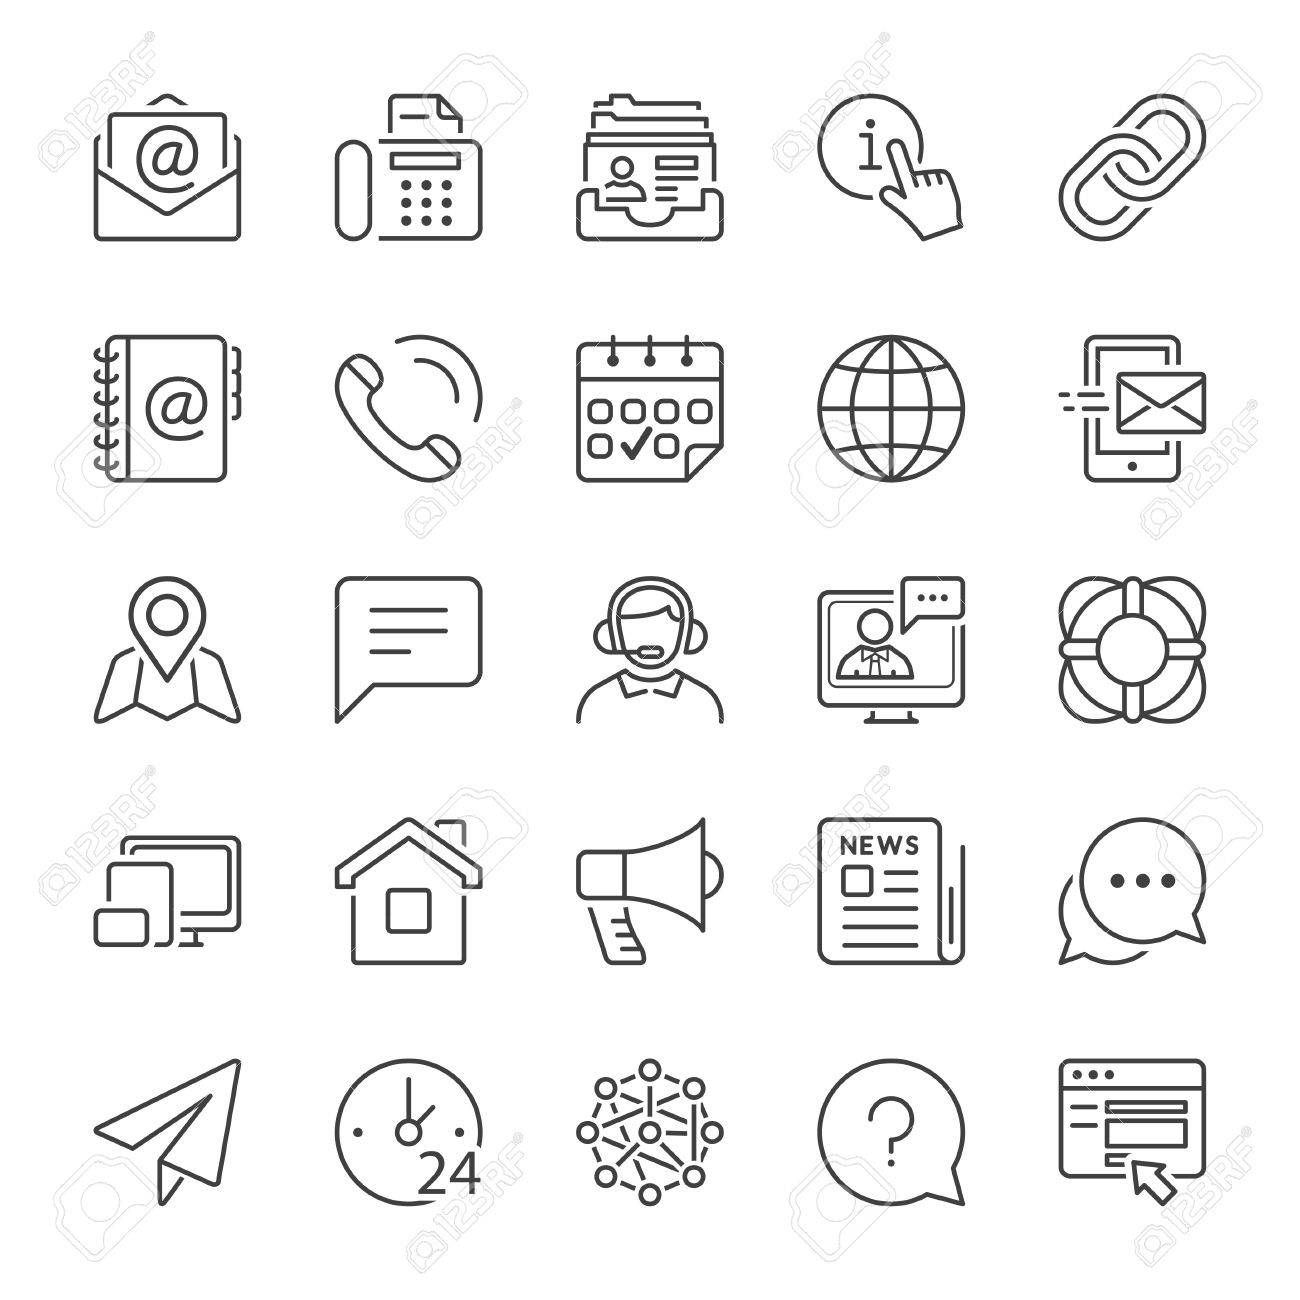 basic contact and communication icon set, thin line, black color - 64462133